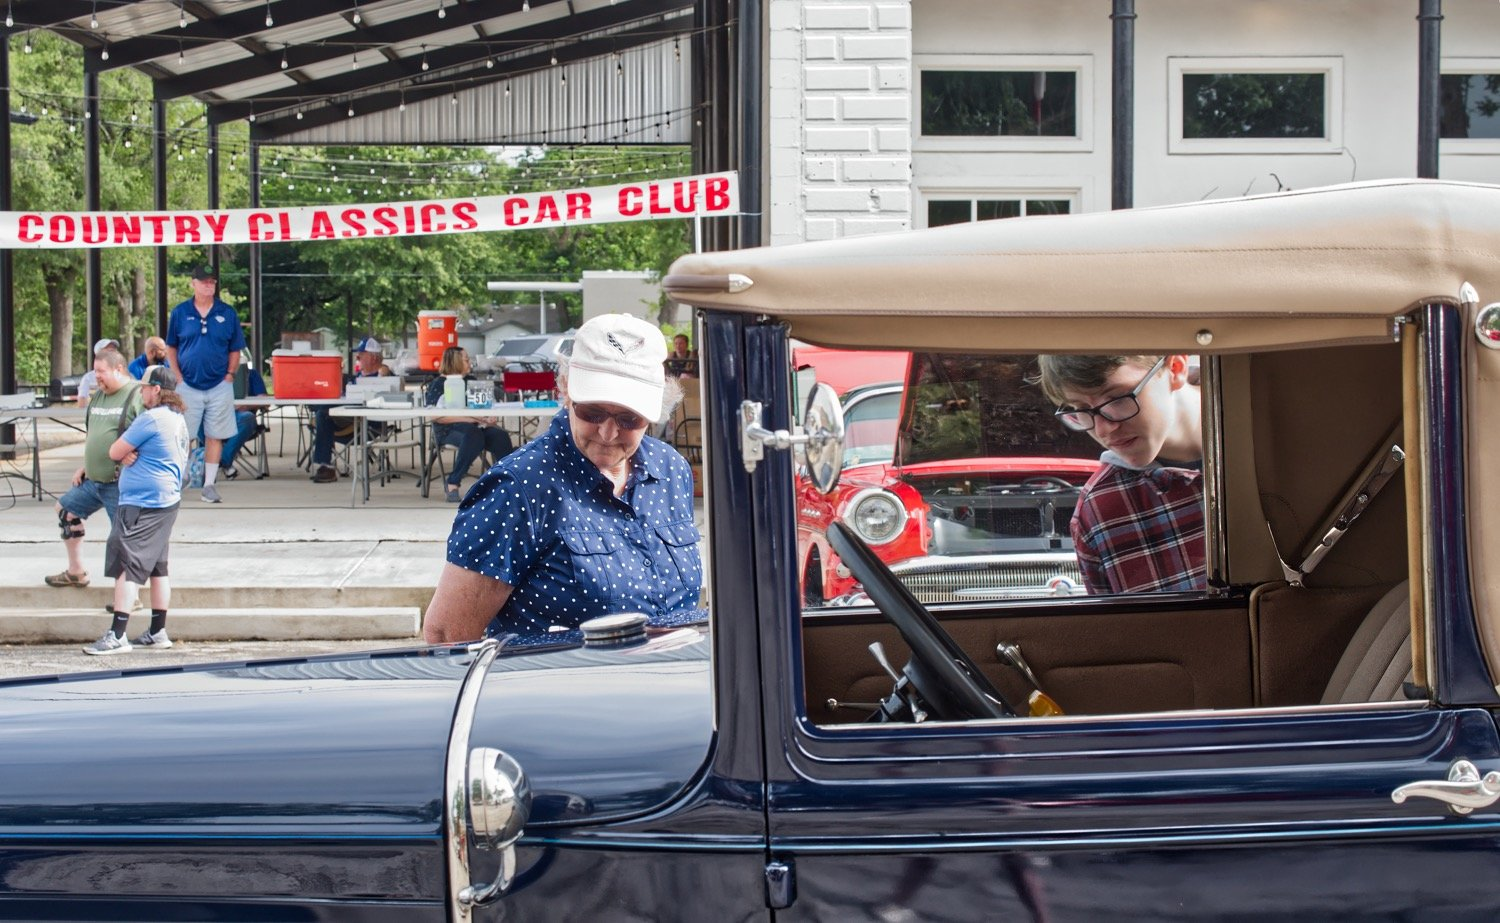 Janet Judkins and Jackson Friddle get a closeup look at an antique Ford Saturday morning at the courthouse square in Quitman. Lake Country Classic Cars put on the show which has been delayed by COVID-19 restrictions since March.